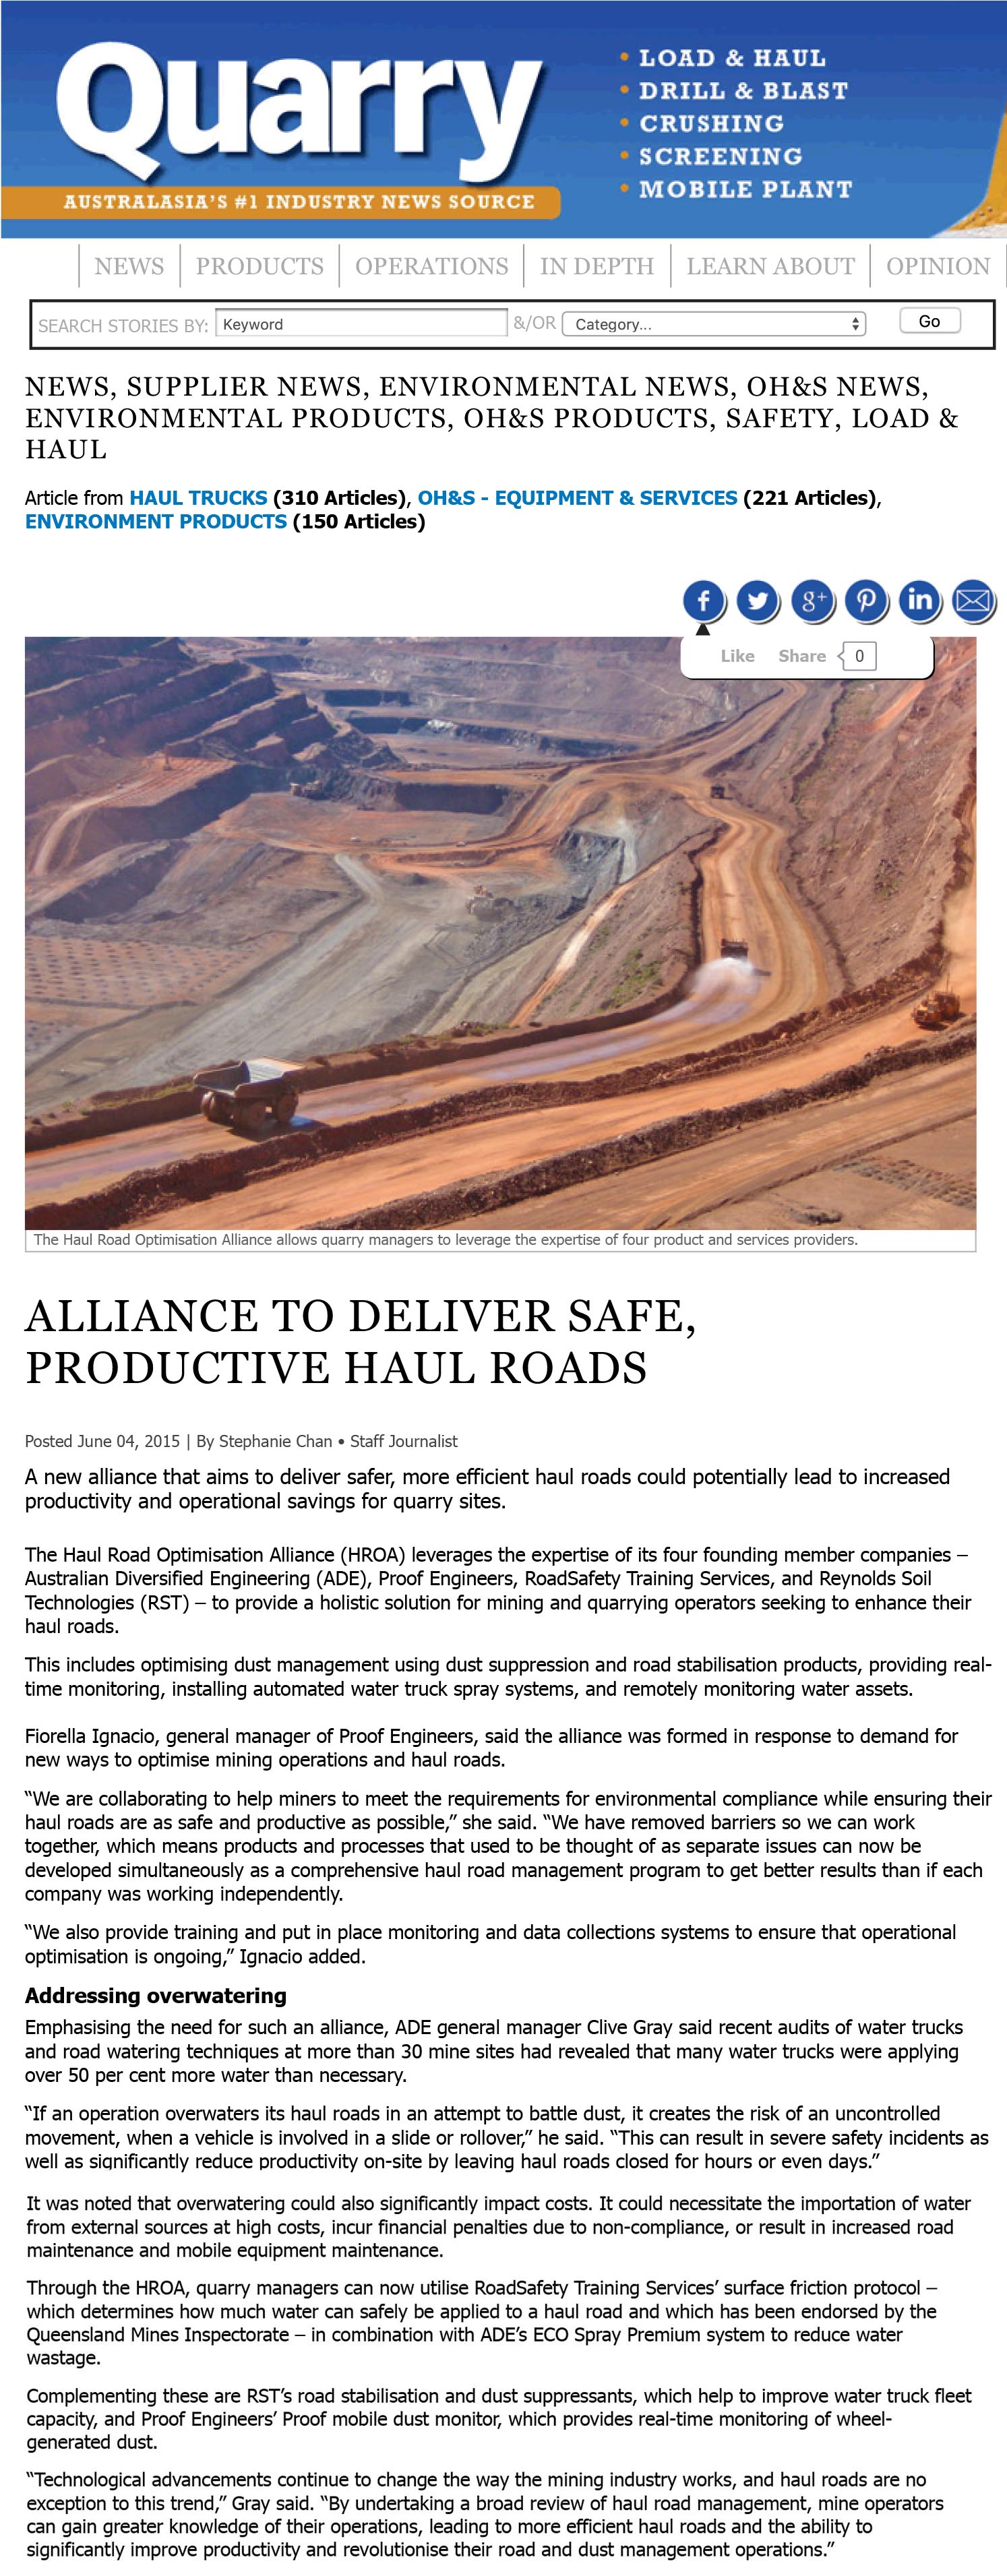 Alliance to deliver safe, productive haul roads - Quarry Magazine_ Quarry Mining and Aggregate News-1